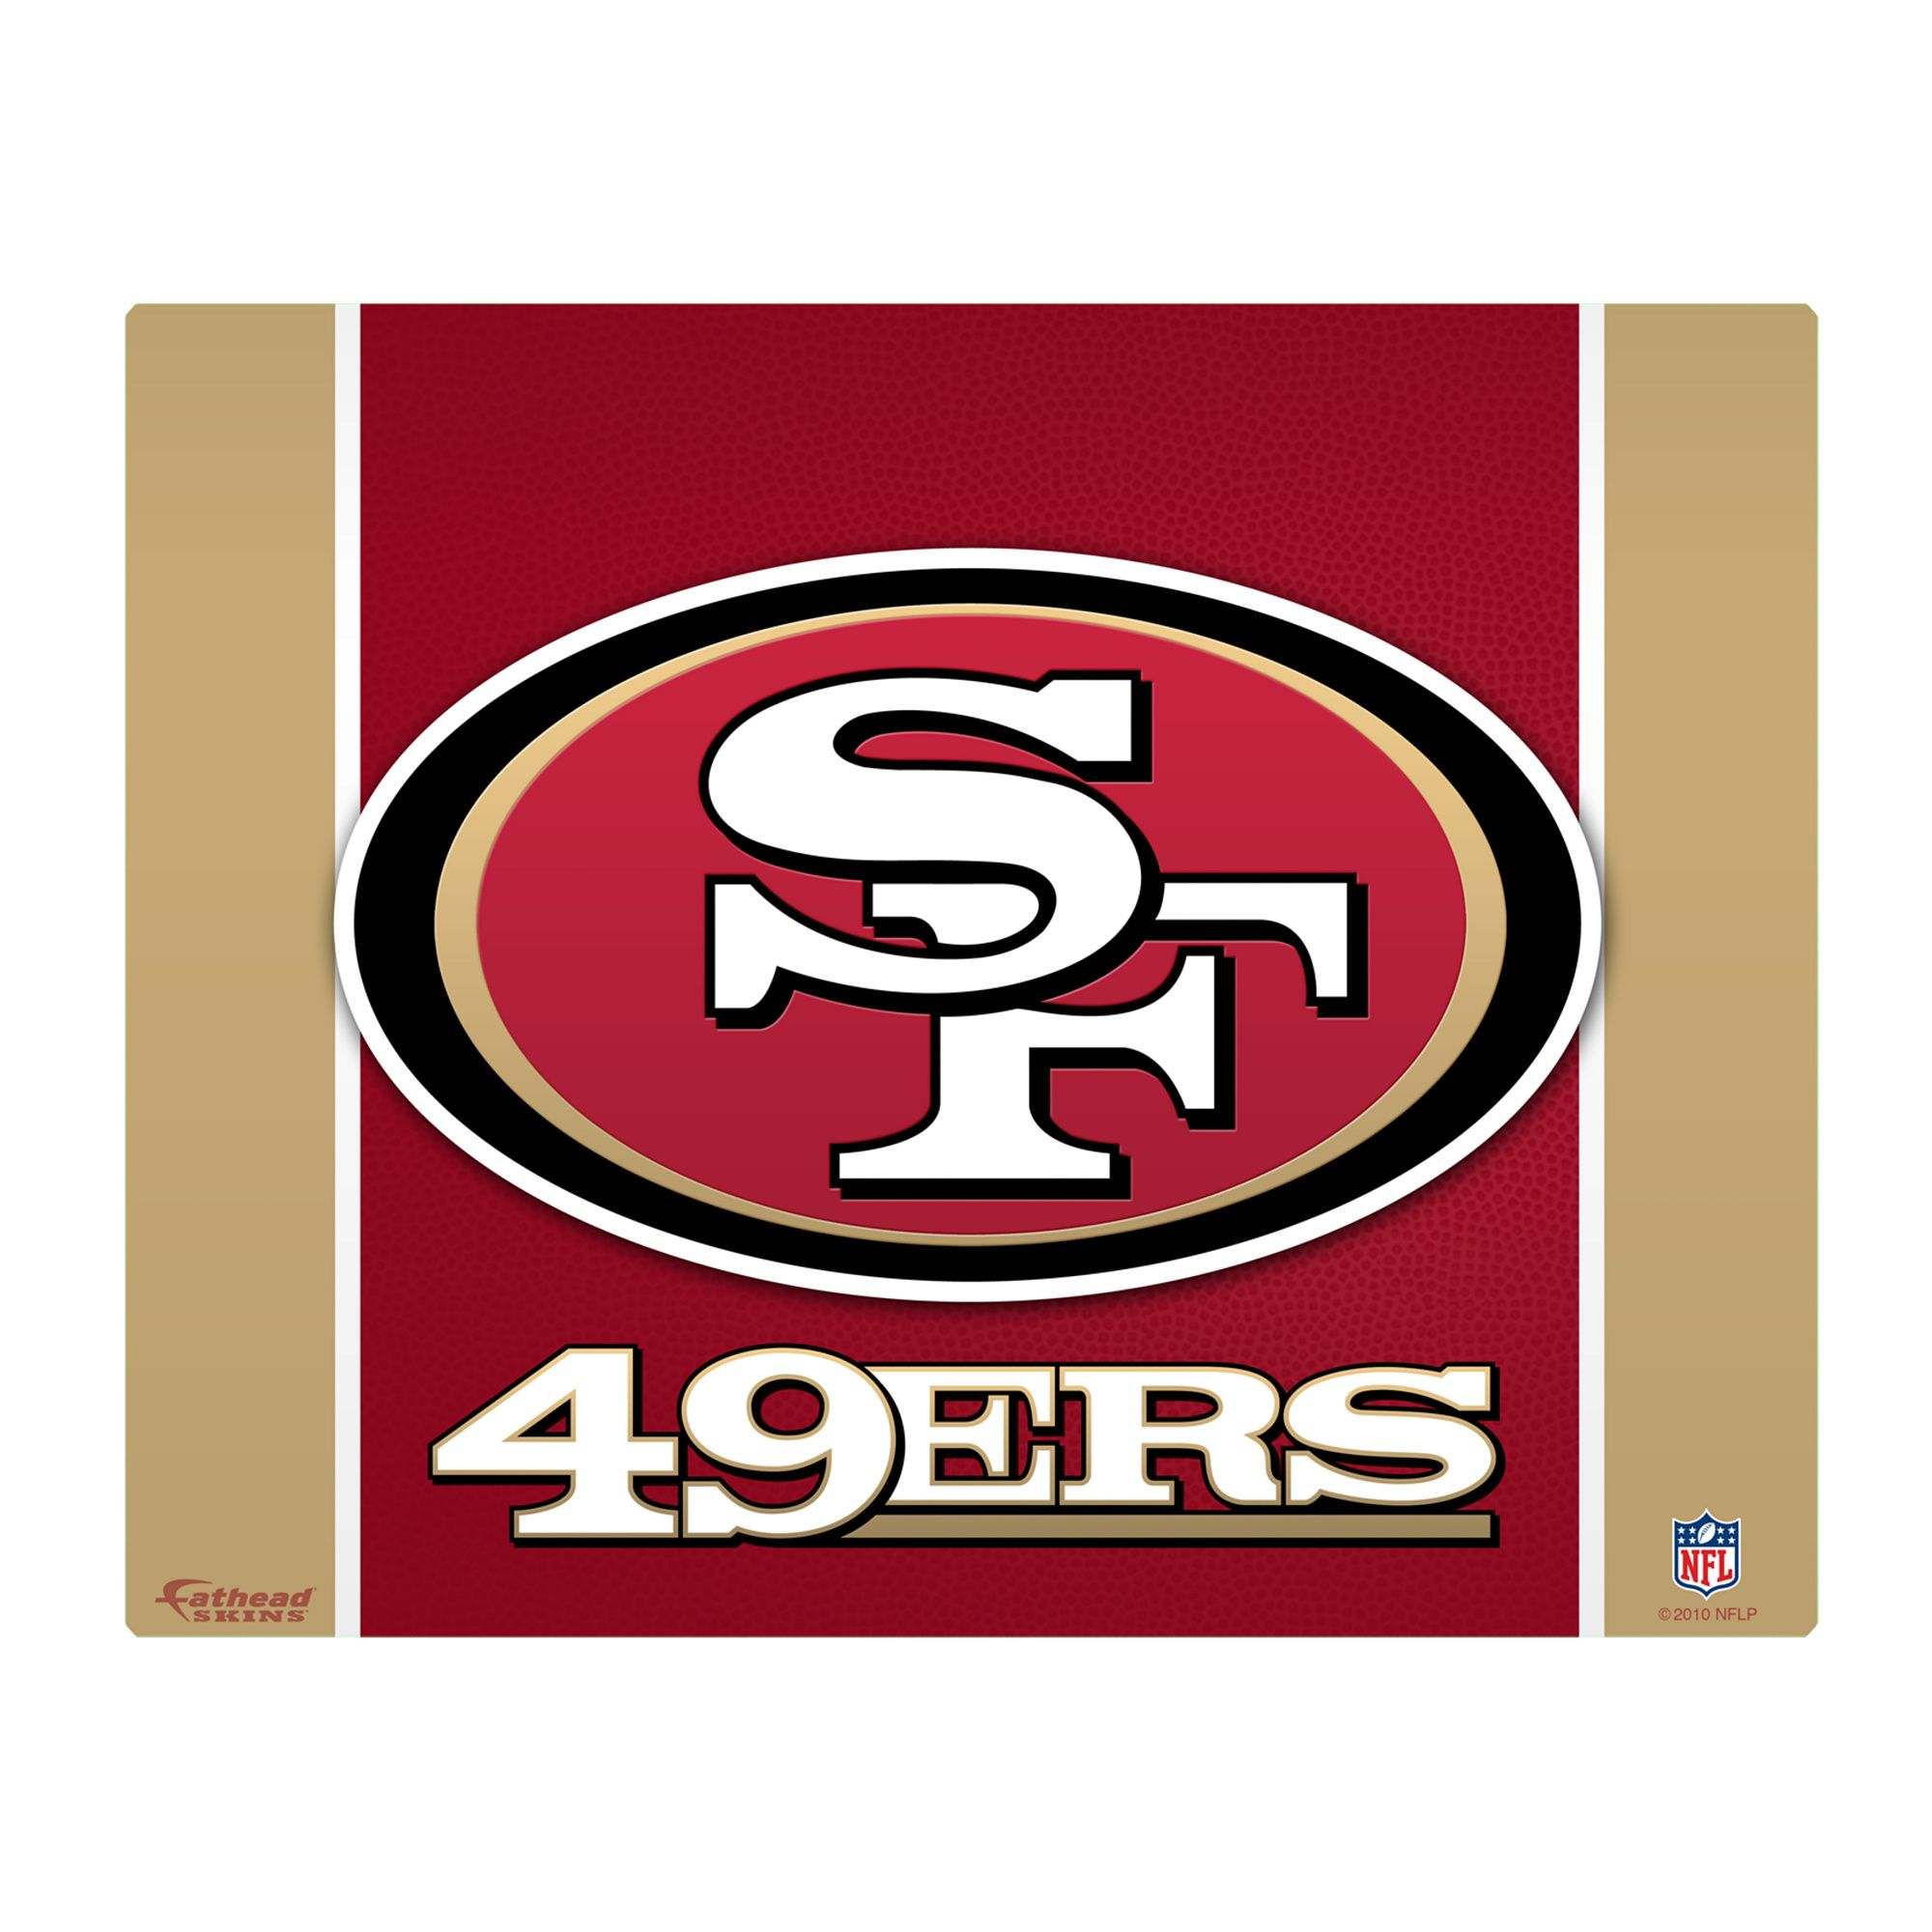 San francisco 49ers logo 1516 sports related pinterest san san francisco 49ers logo 1516 voltagebd Choice Image